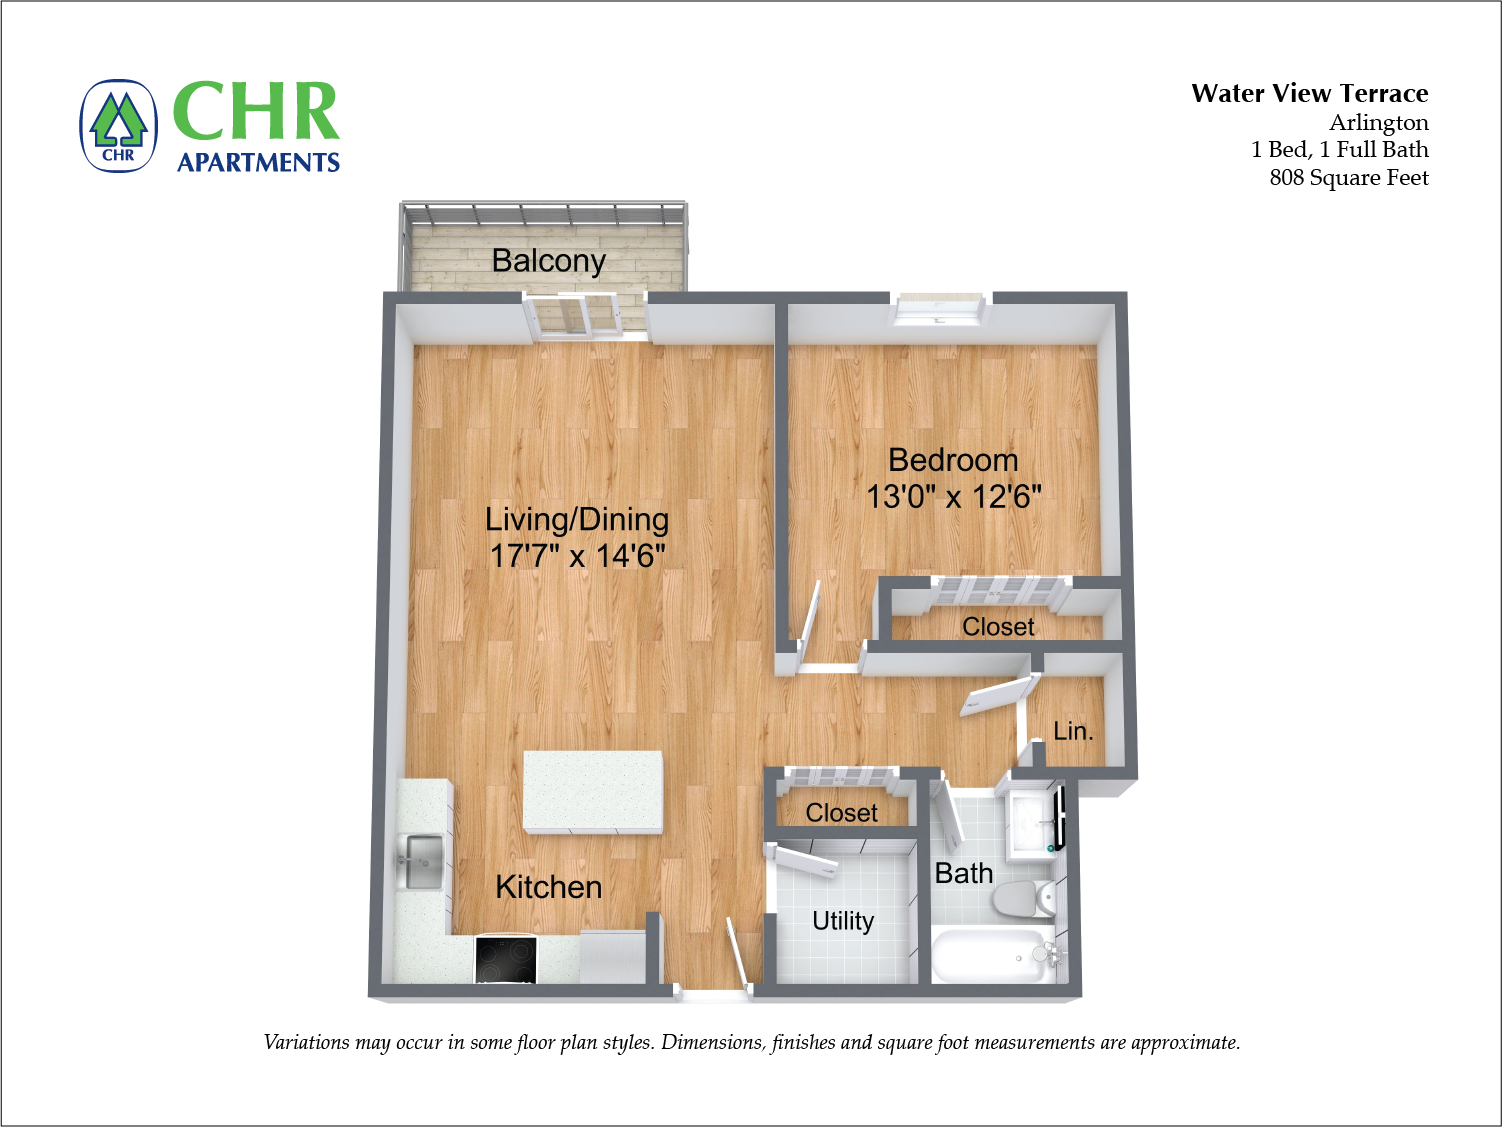 Click to view 1 BR w/ Balcony & Extra Closets floor plan gallery